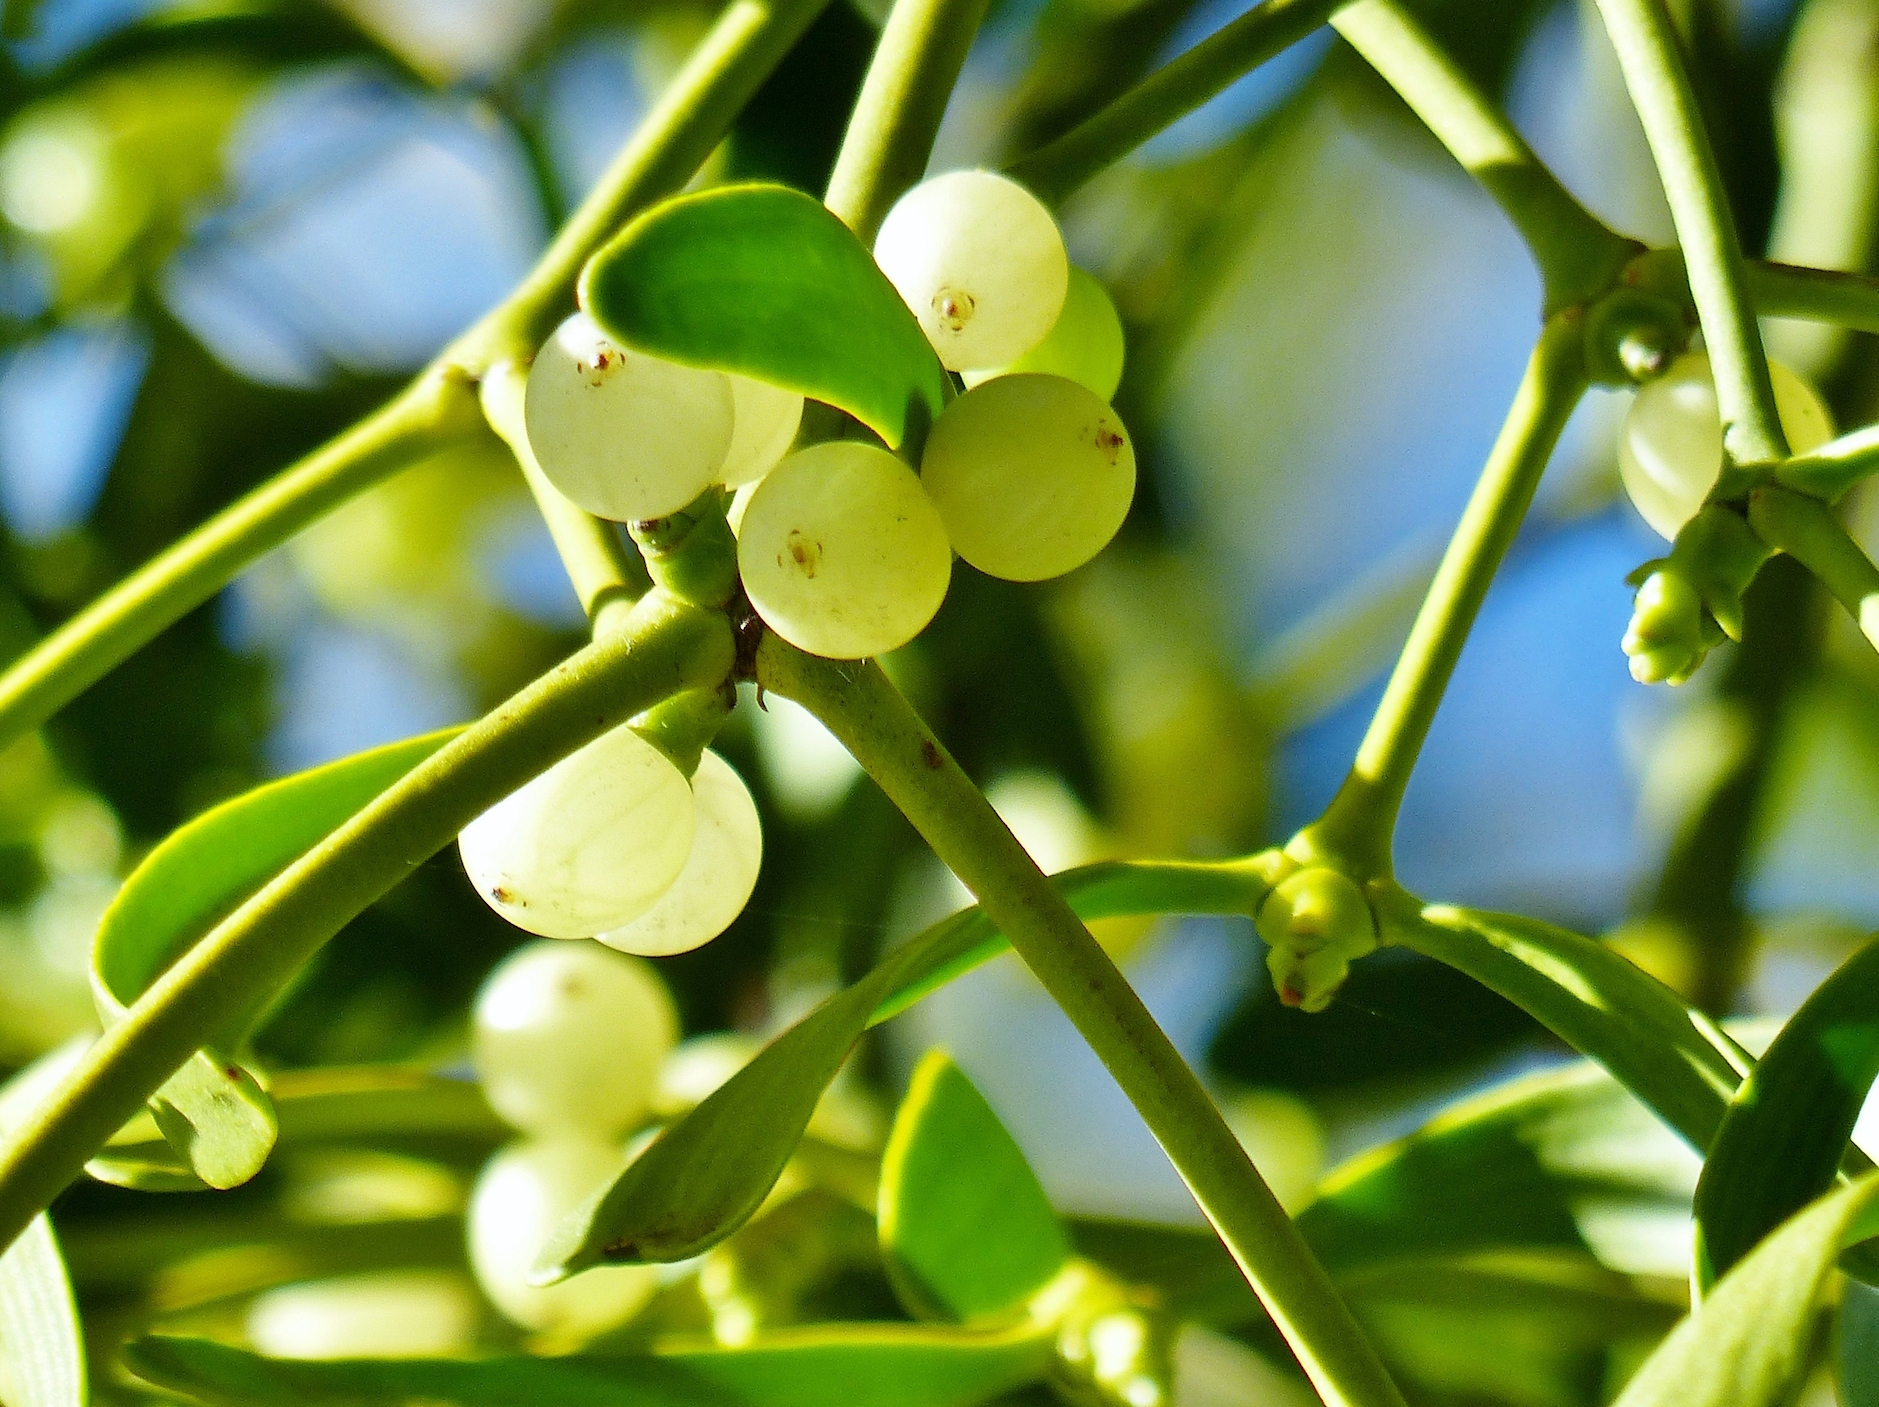 Scientists have recently discovered that the parasitic nature of mistletoe has caused the plants to evolve without specific components that are required for plant respiration.